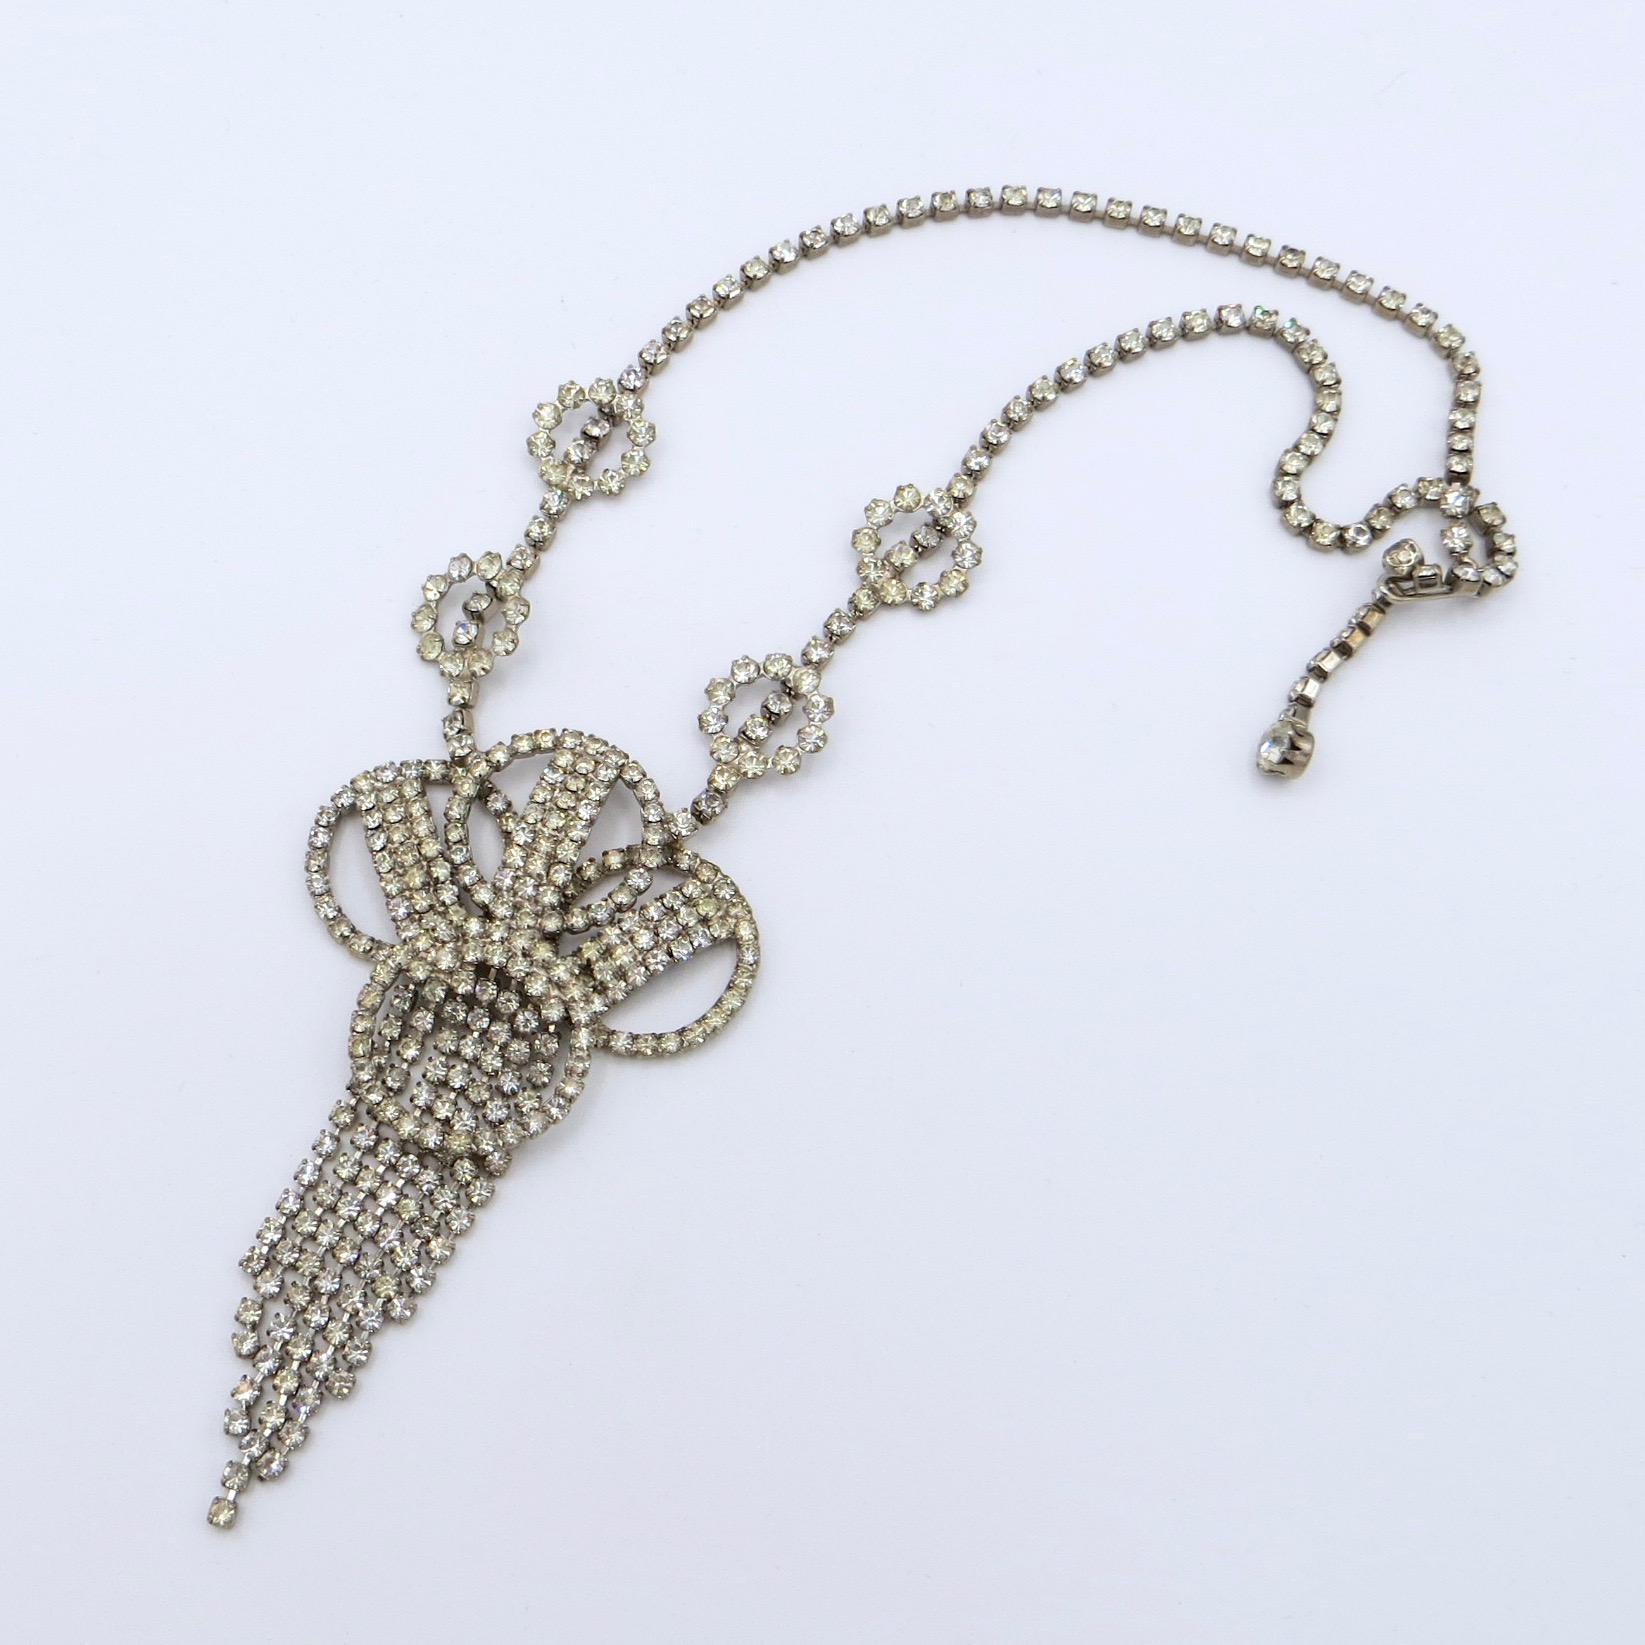 Rhinestone Waterfall Necklace